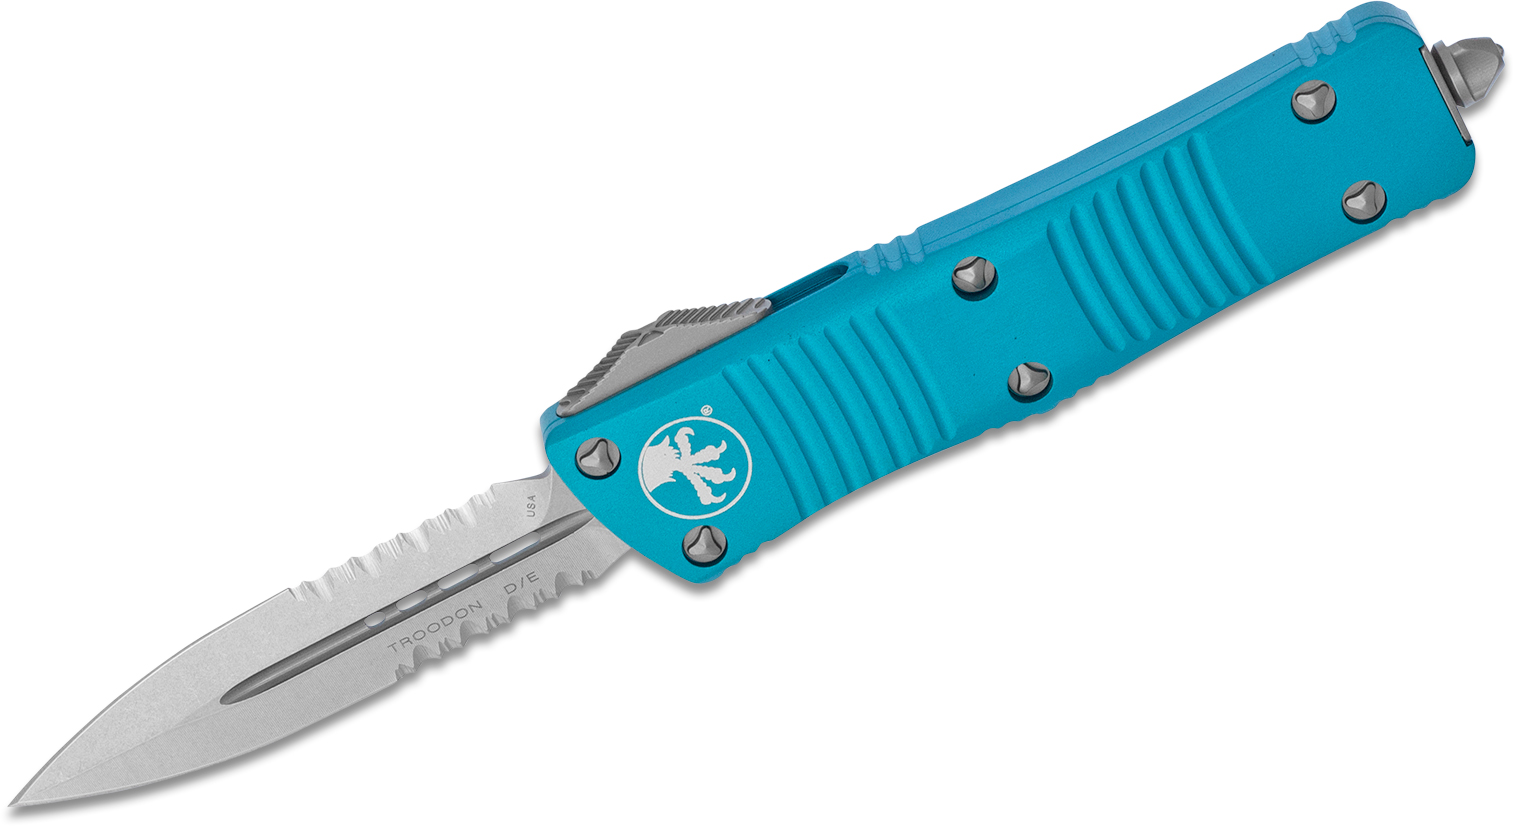 Microtech 138-11TQ Troodon AUTO OTF Knife 3.06 inch Stonewashed Double Combo Edge Dagger Blade, Turquoise Aluminum Handles